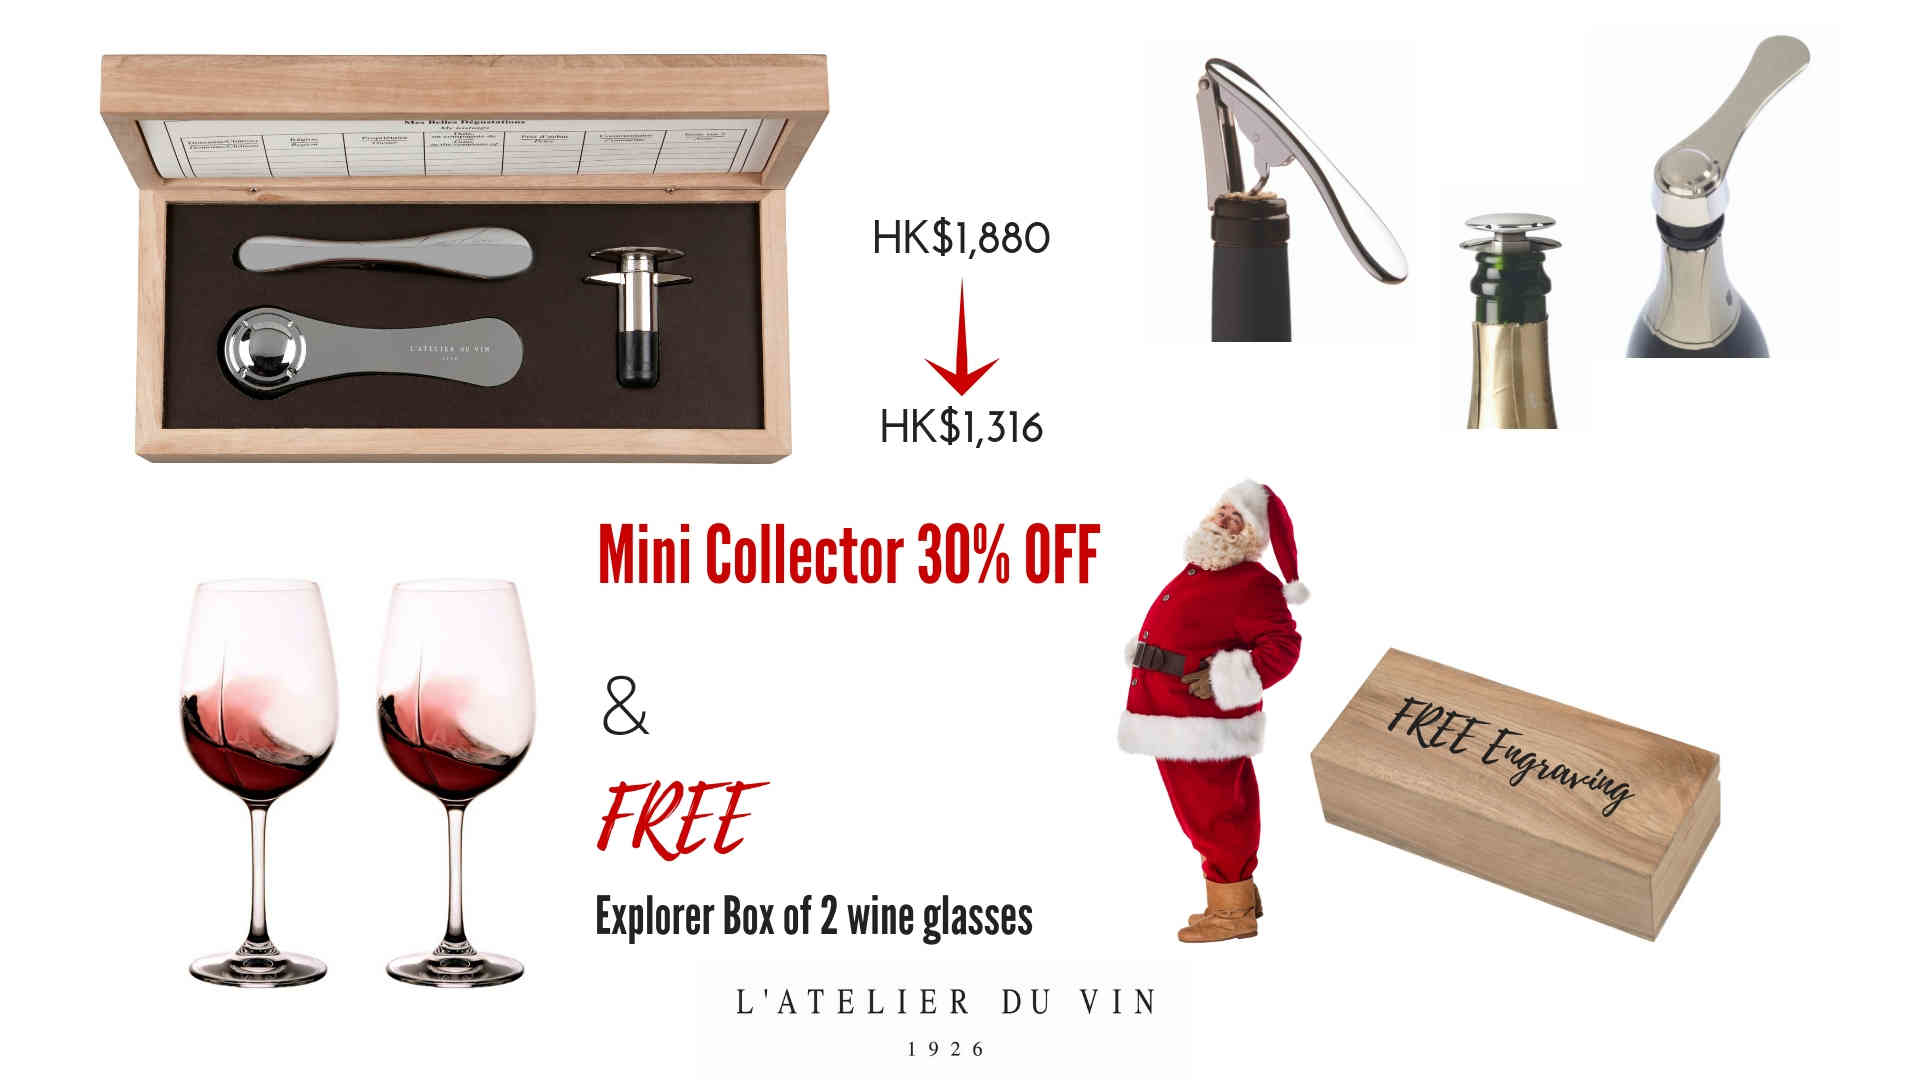 Mini Collector Christmas Gift L'Atelier du Vin France 1926